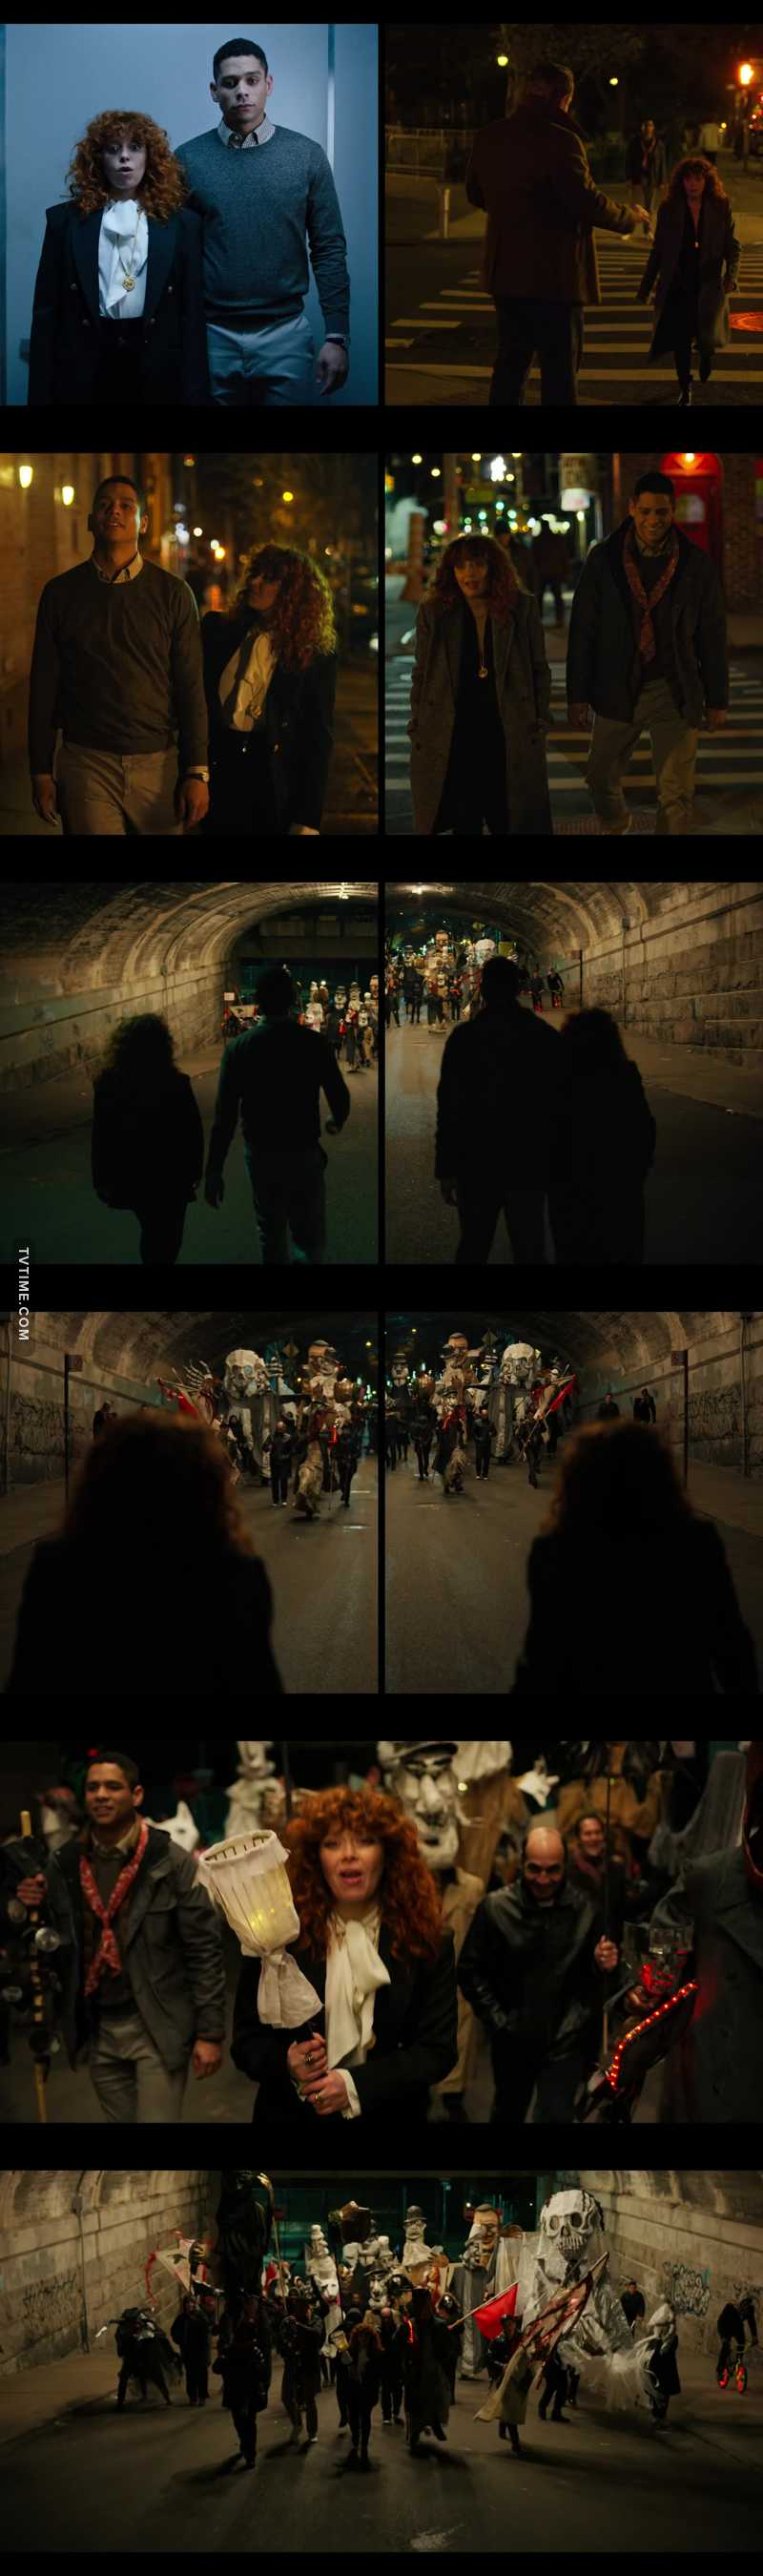 I LOVED these scenes and how their two timelines merged into one. Nicely done!